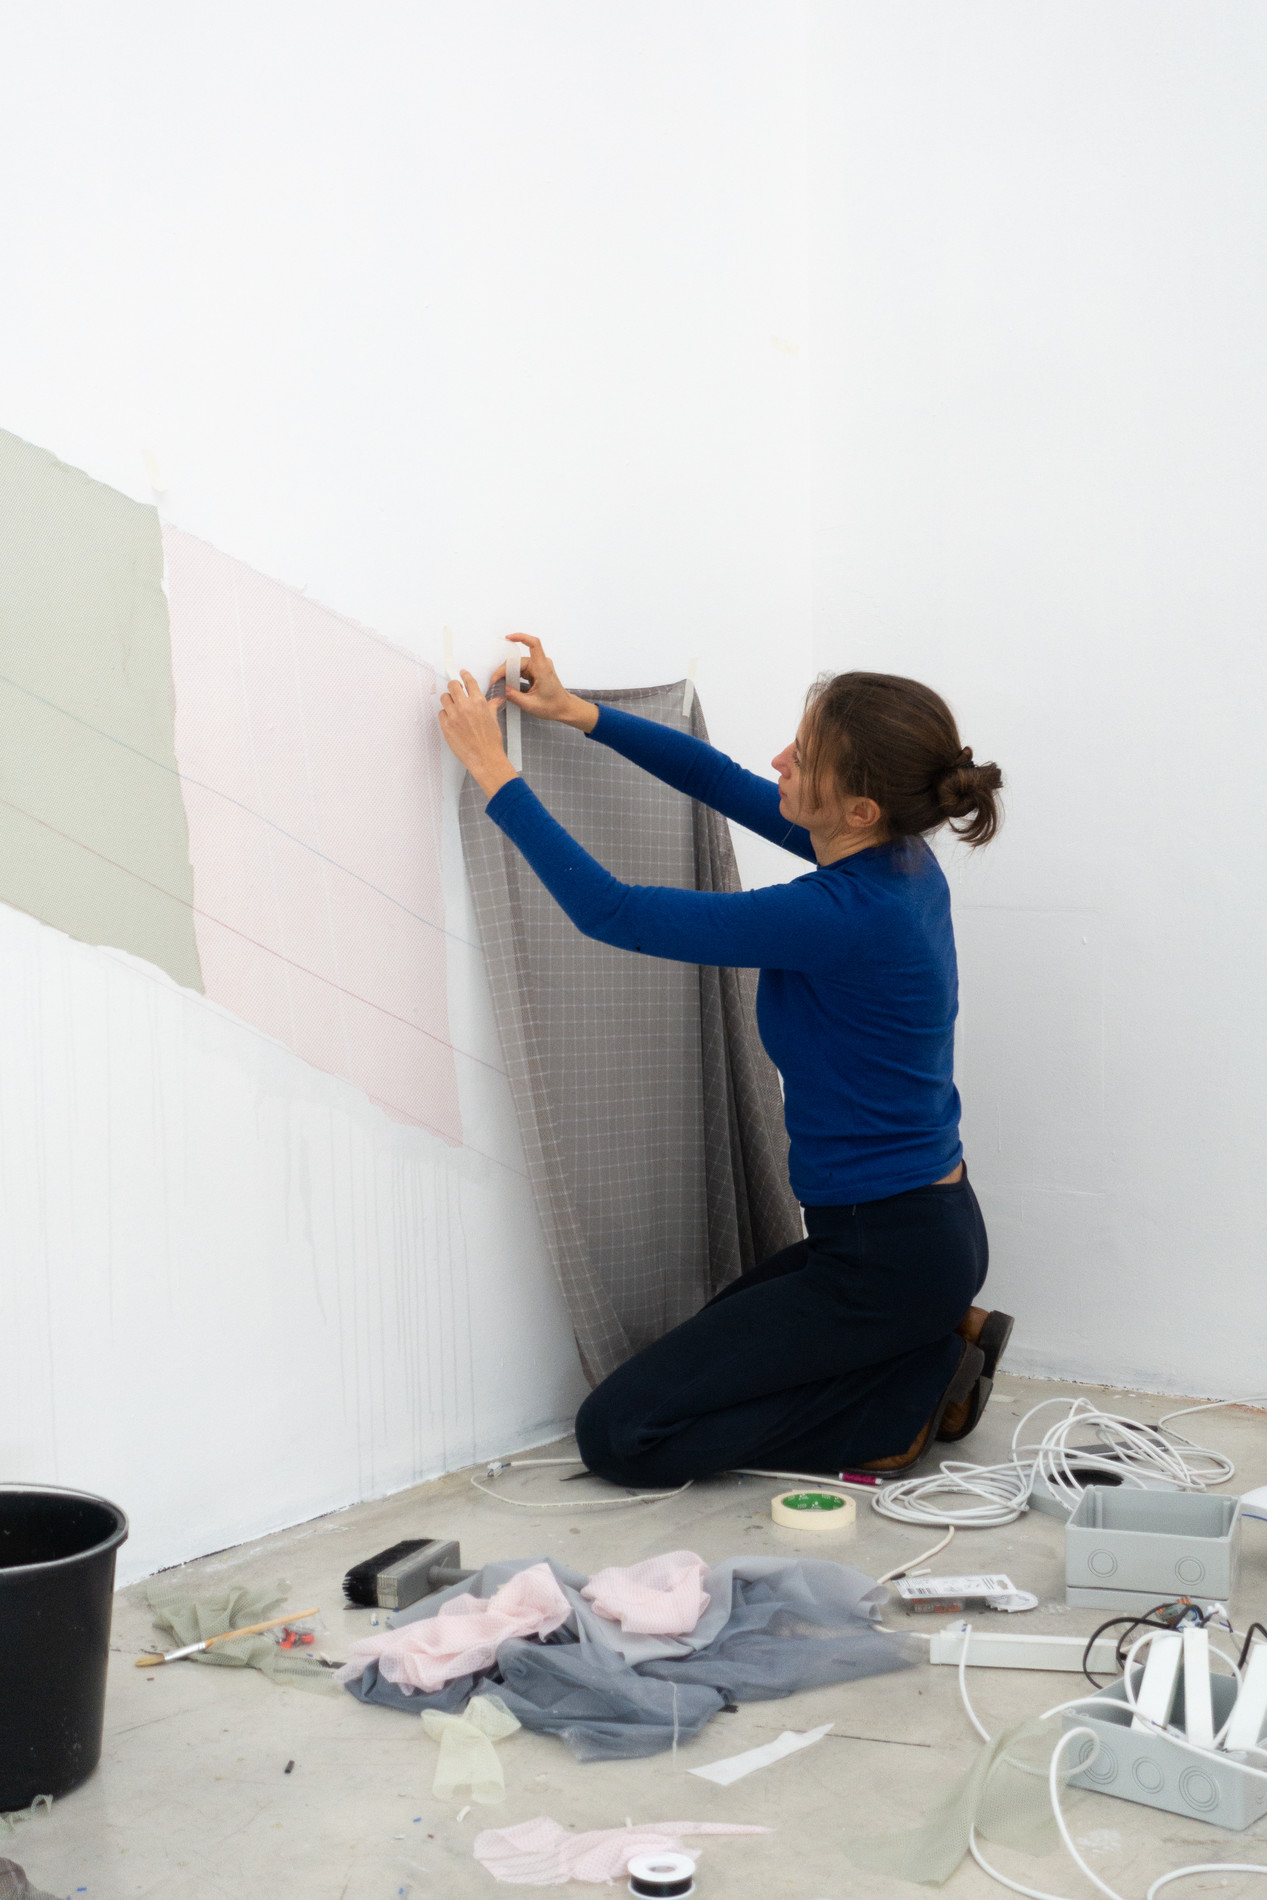 Olga Pedan during the set up of the exhibition self conscious hosted by AETHER.